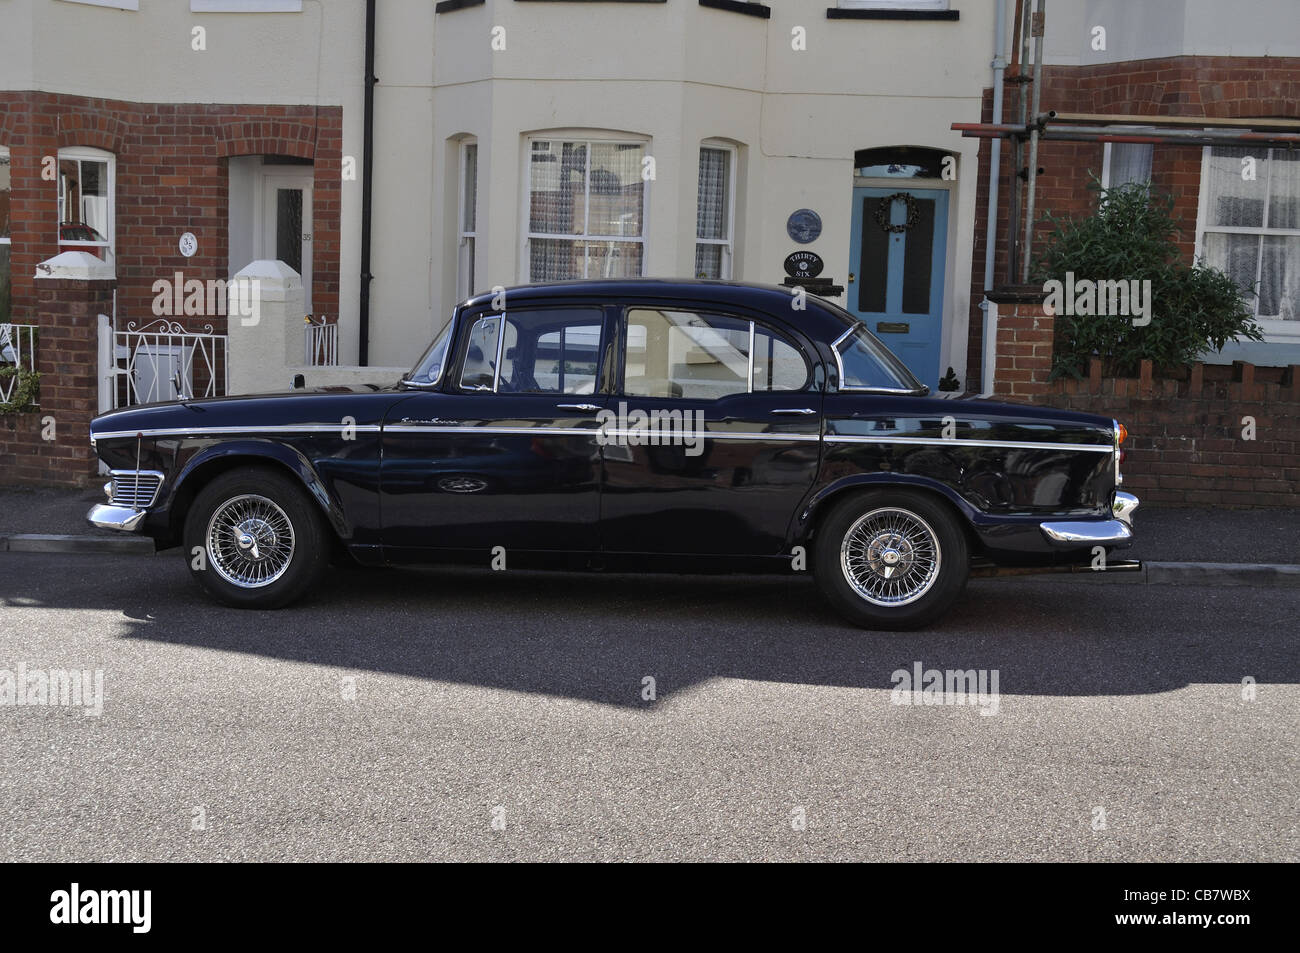 Nearside view of Humber Super Snipe Series III in a side street in Sidmouth, Devon. - Stock Image